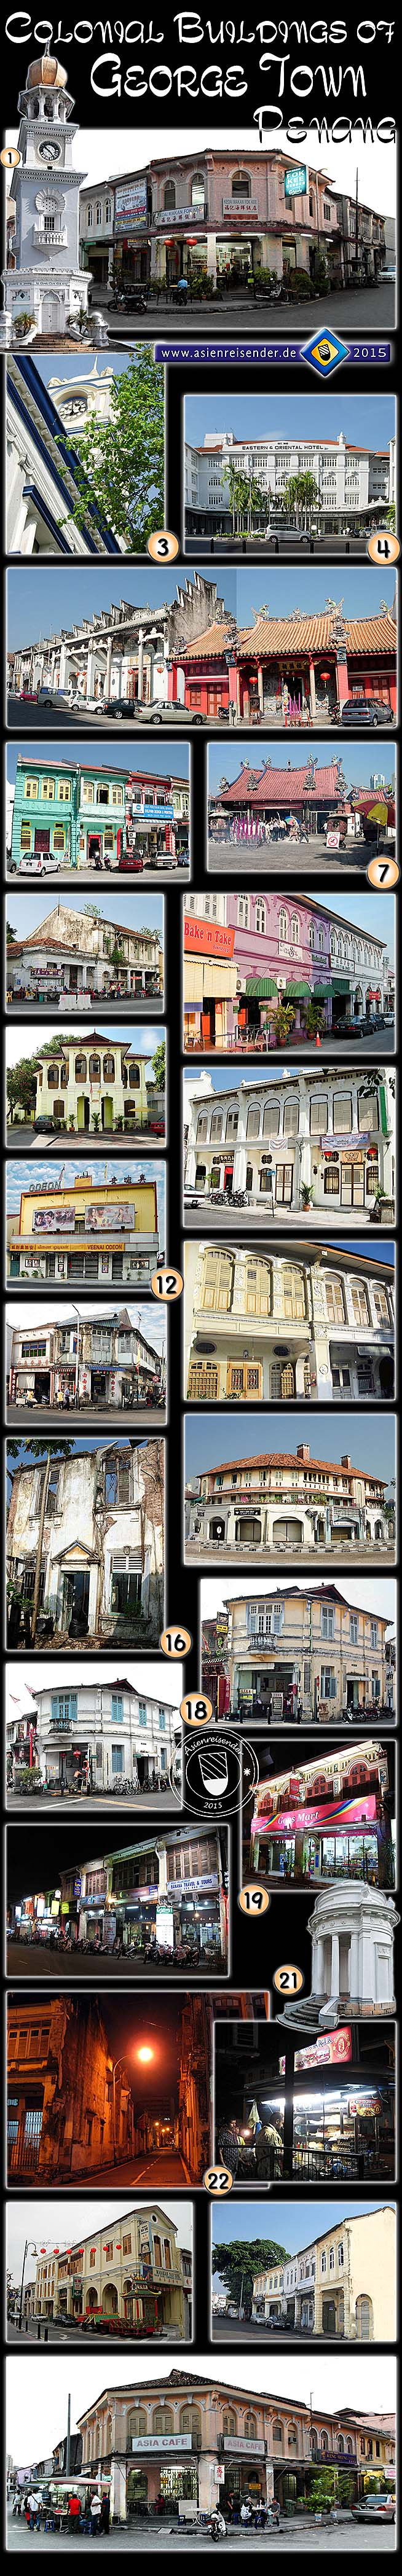 'Photocomposition - The Colonial Buildings of George Town -' by Asienreisender